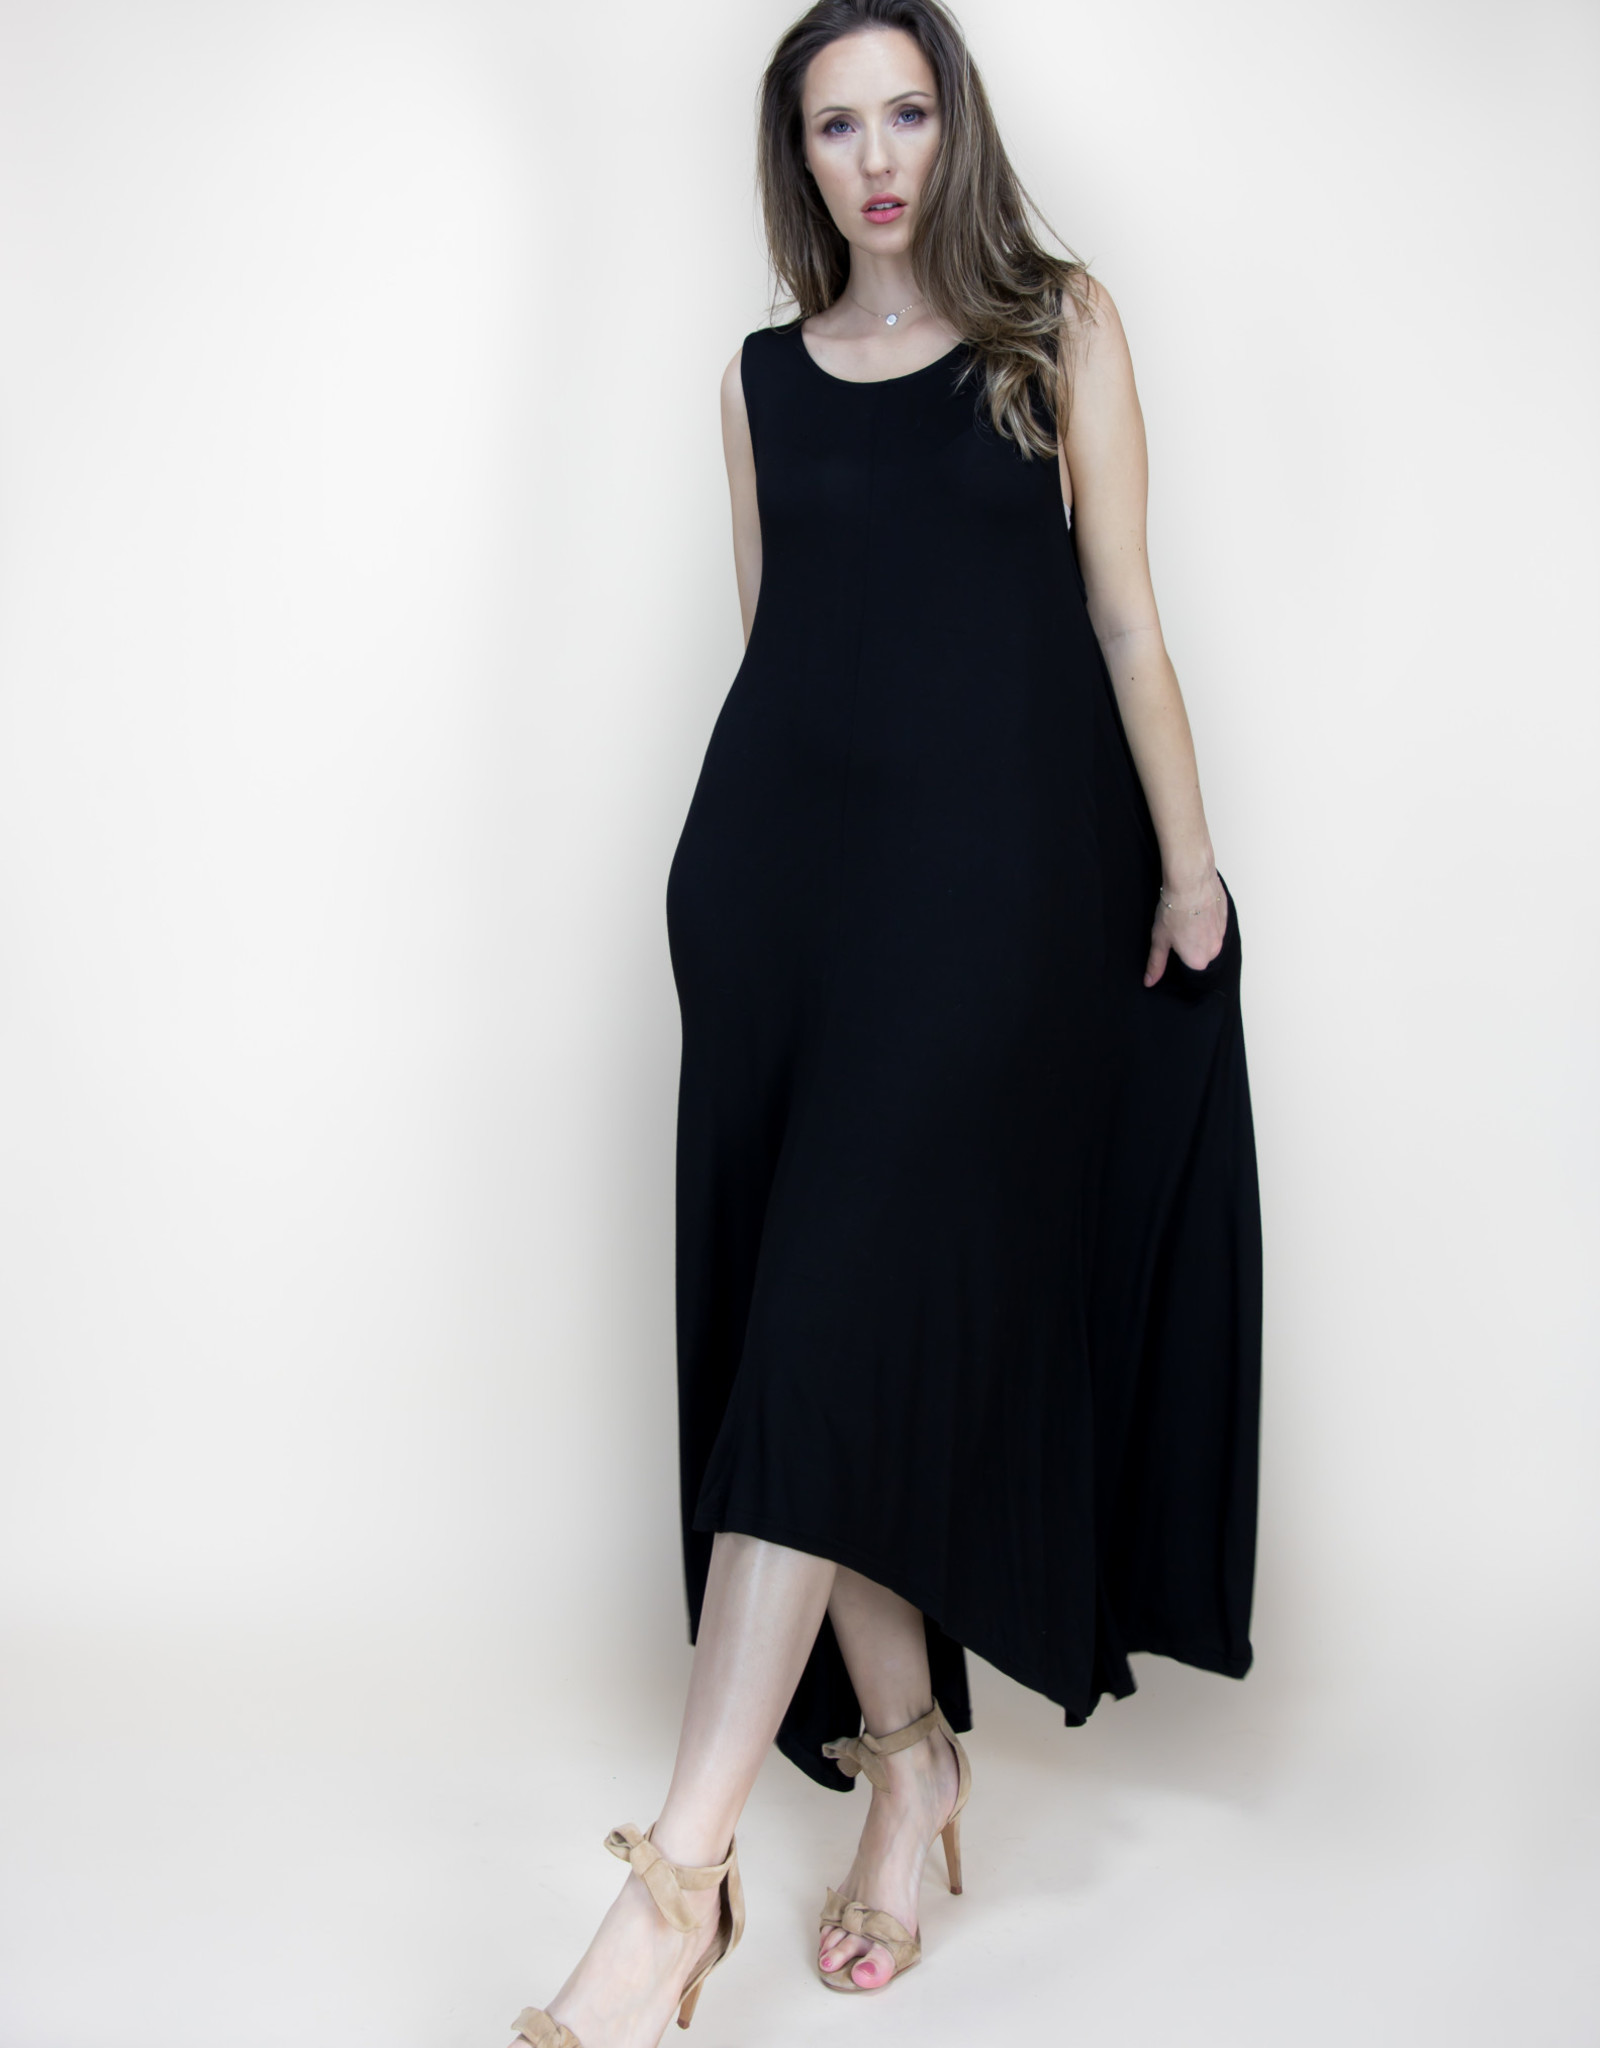 Harem Dress Black